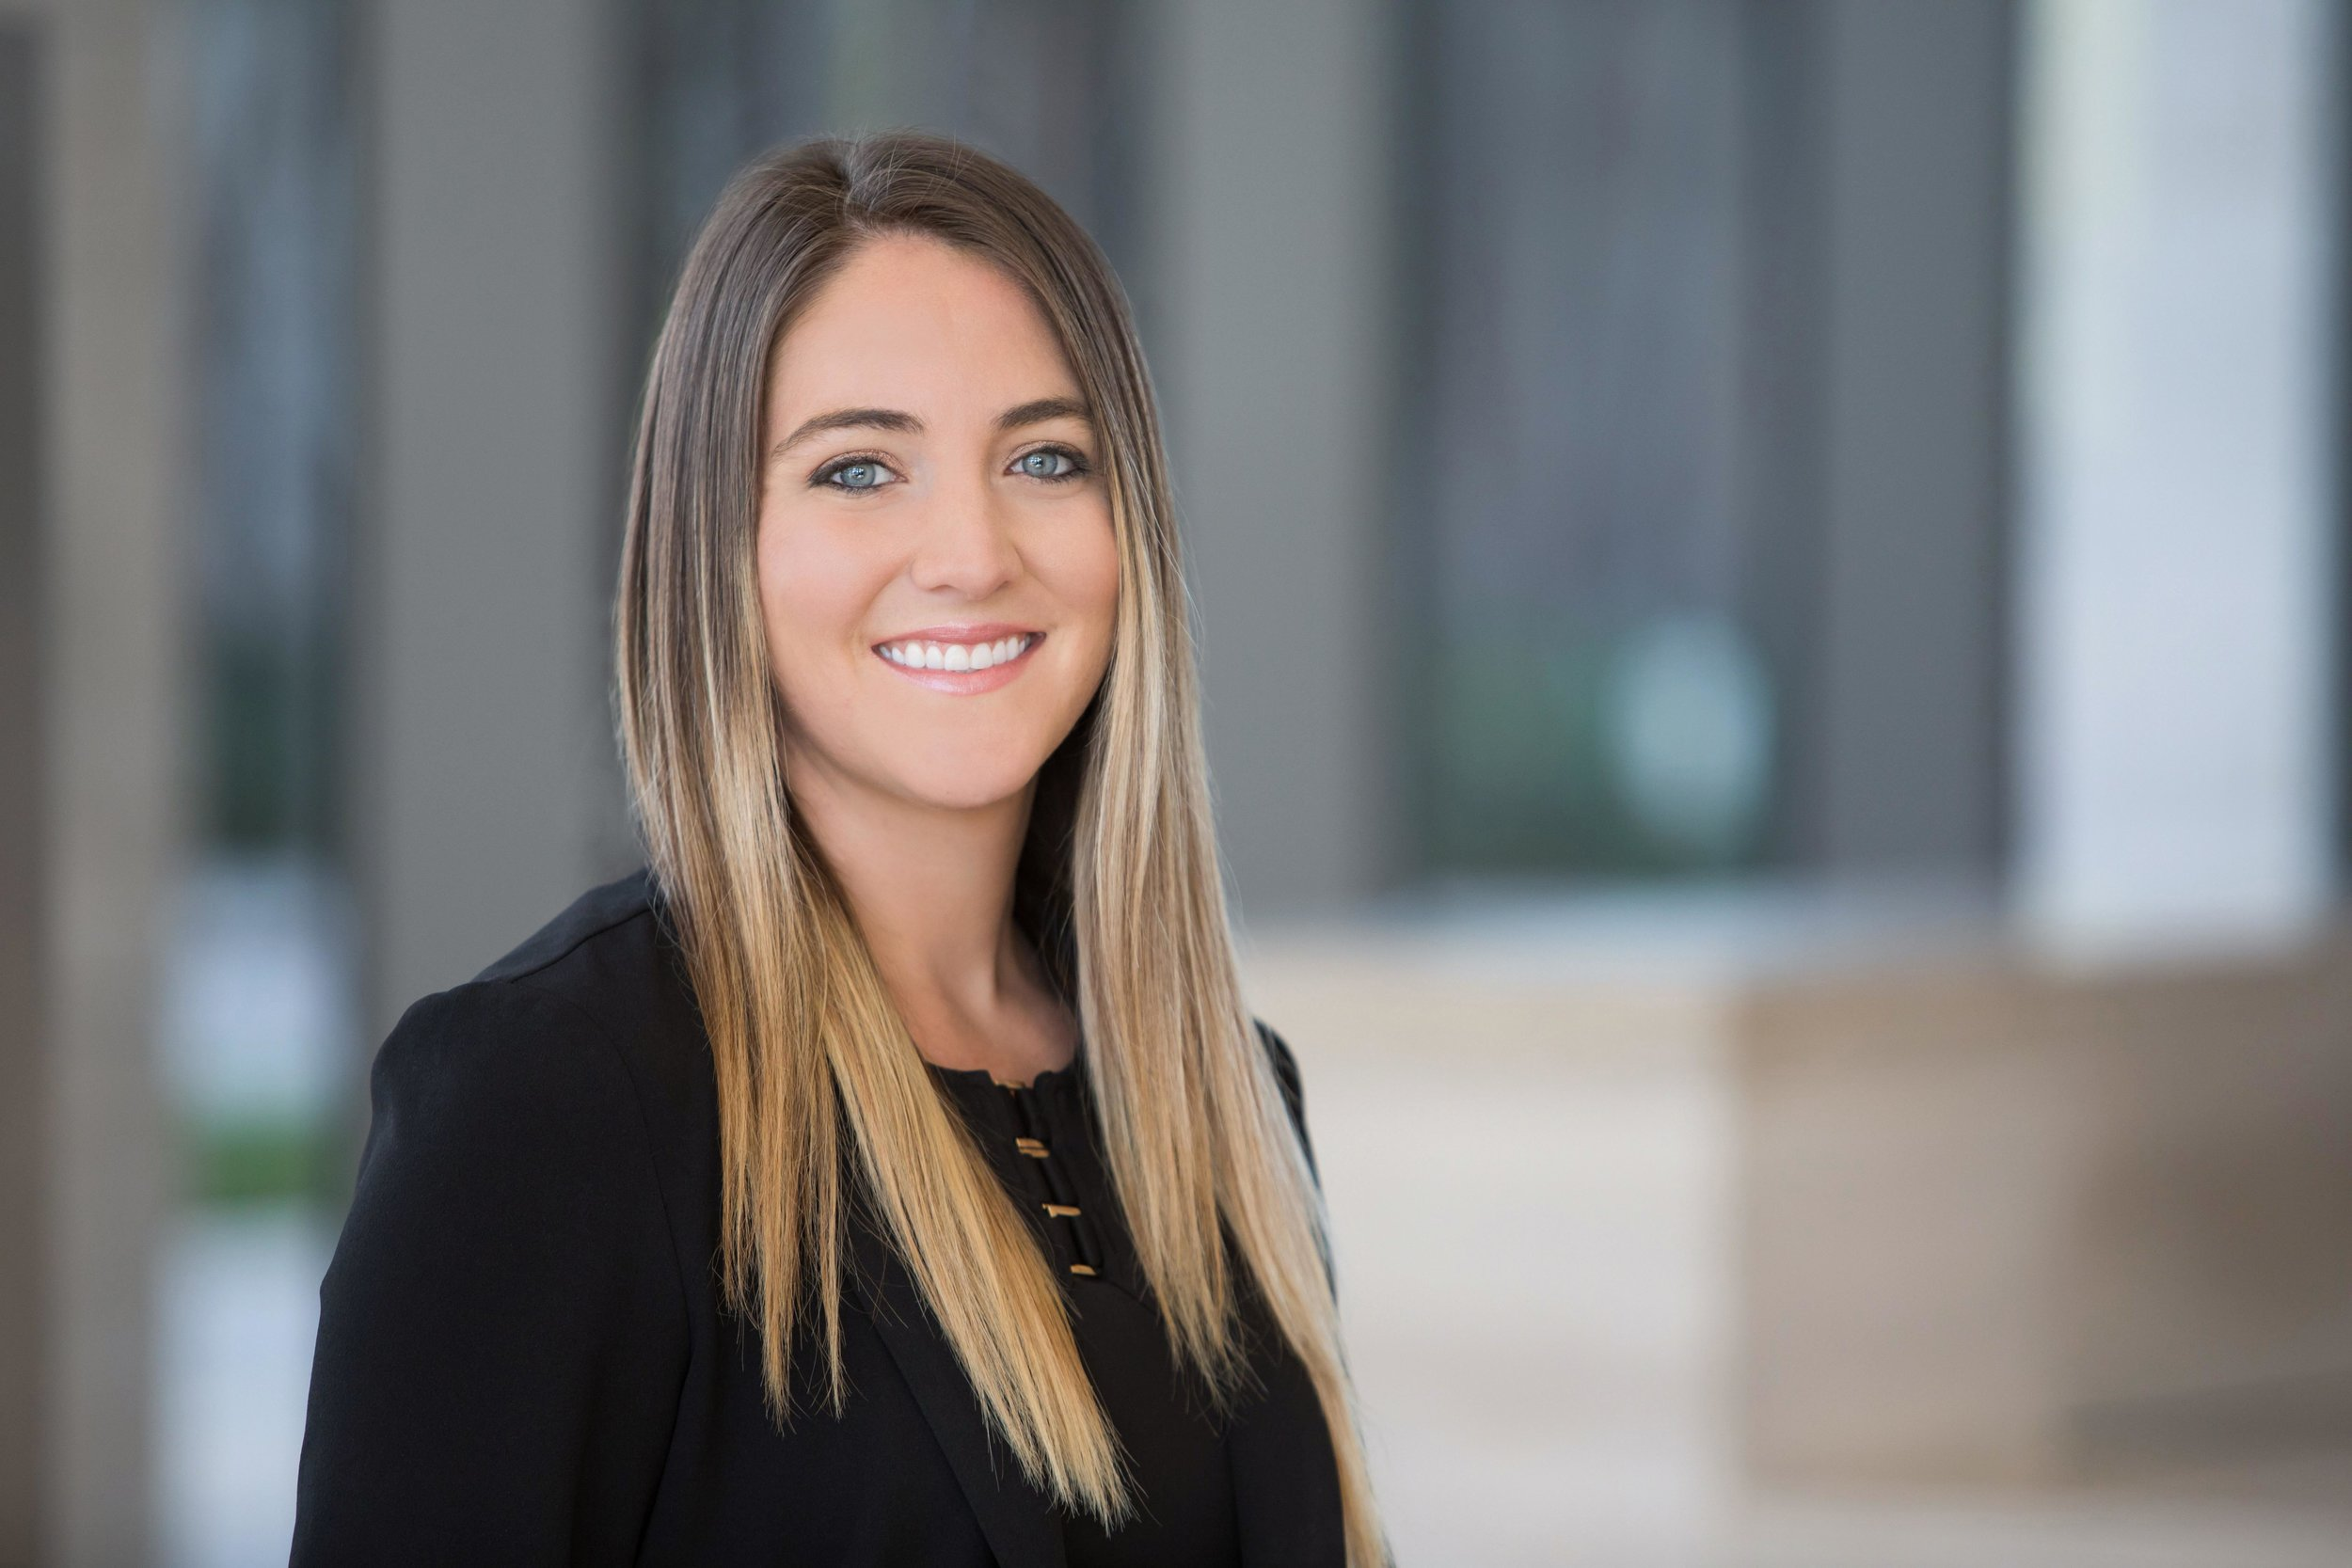 Professional corporate headshot and team photography for Merrill Lynch financial advisors women.